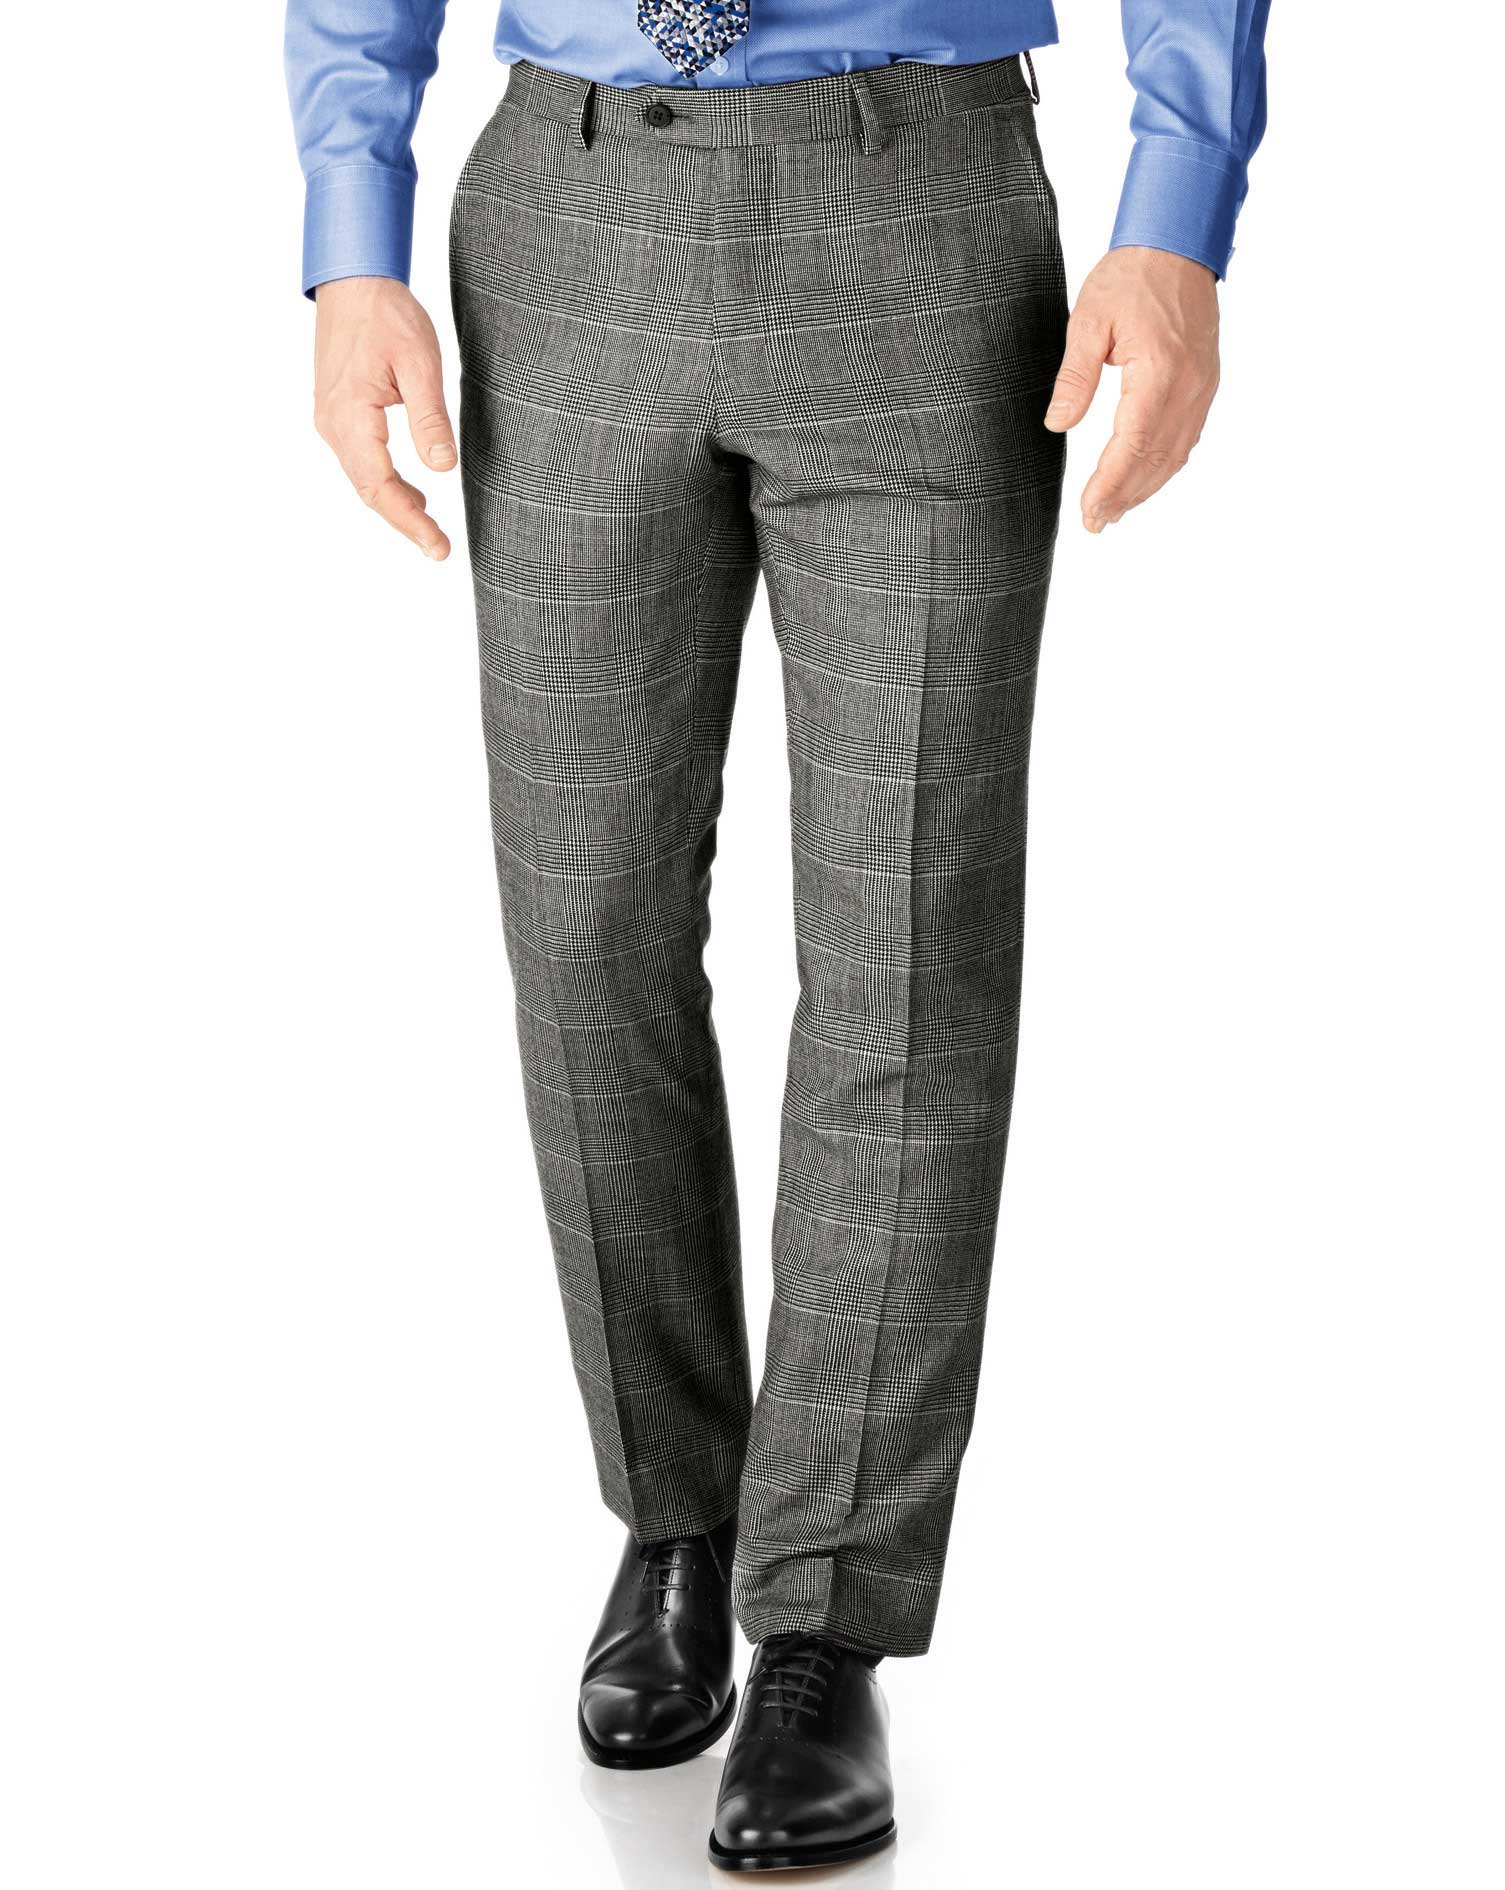 Grey Check Classic Fit Twill Business Suit Trouser Size W34 L38 by Charles Tyrwhitt